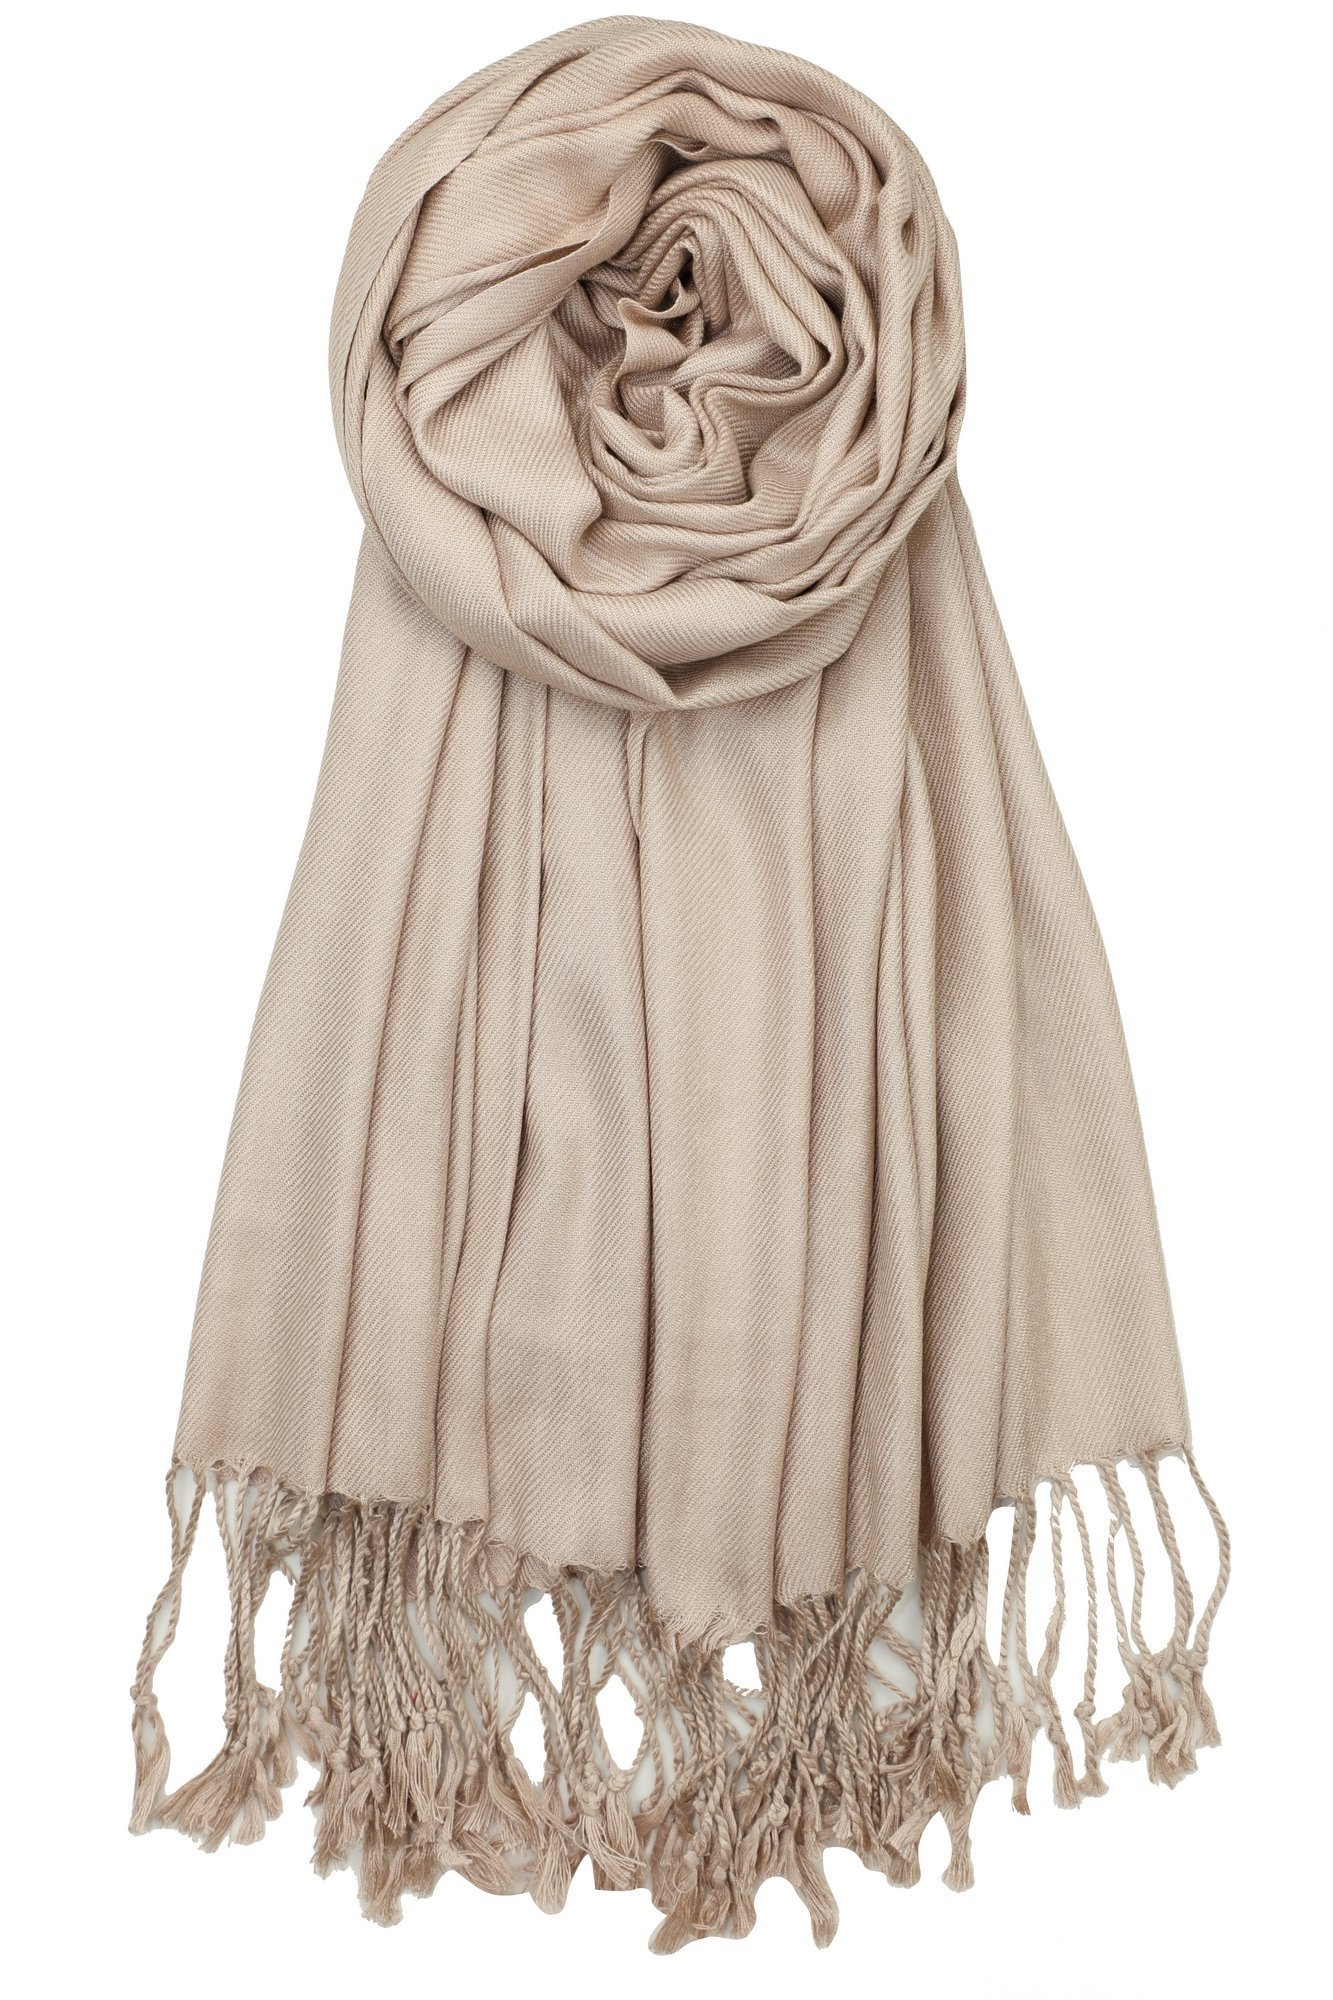 Achillea Large Soft Silky Pashmina Shawl Wrap Scarf in Solid Colors (Light Camel/Tan) by Achillea